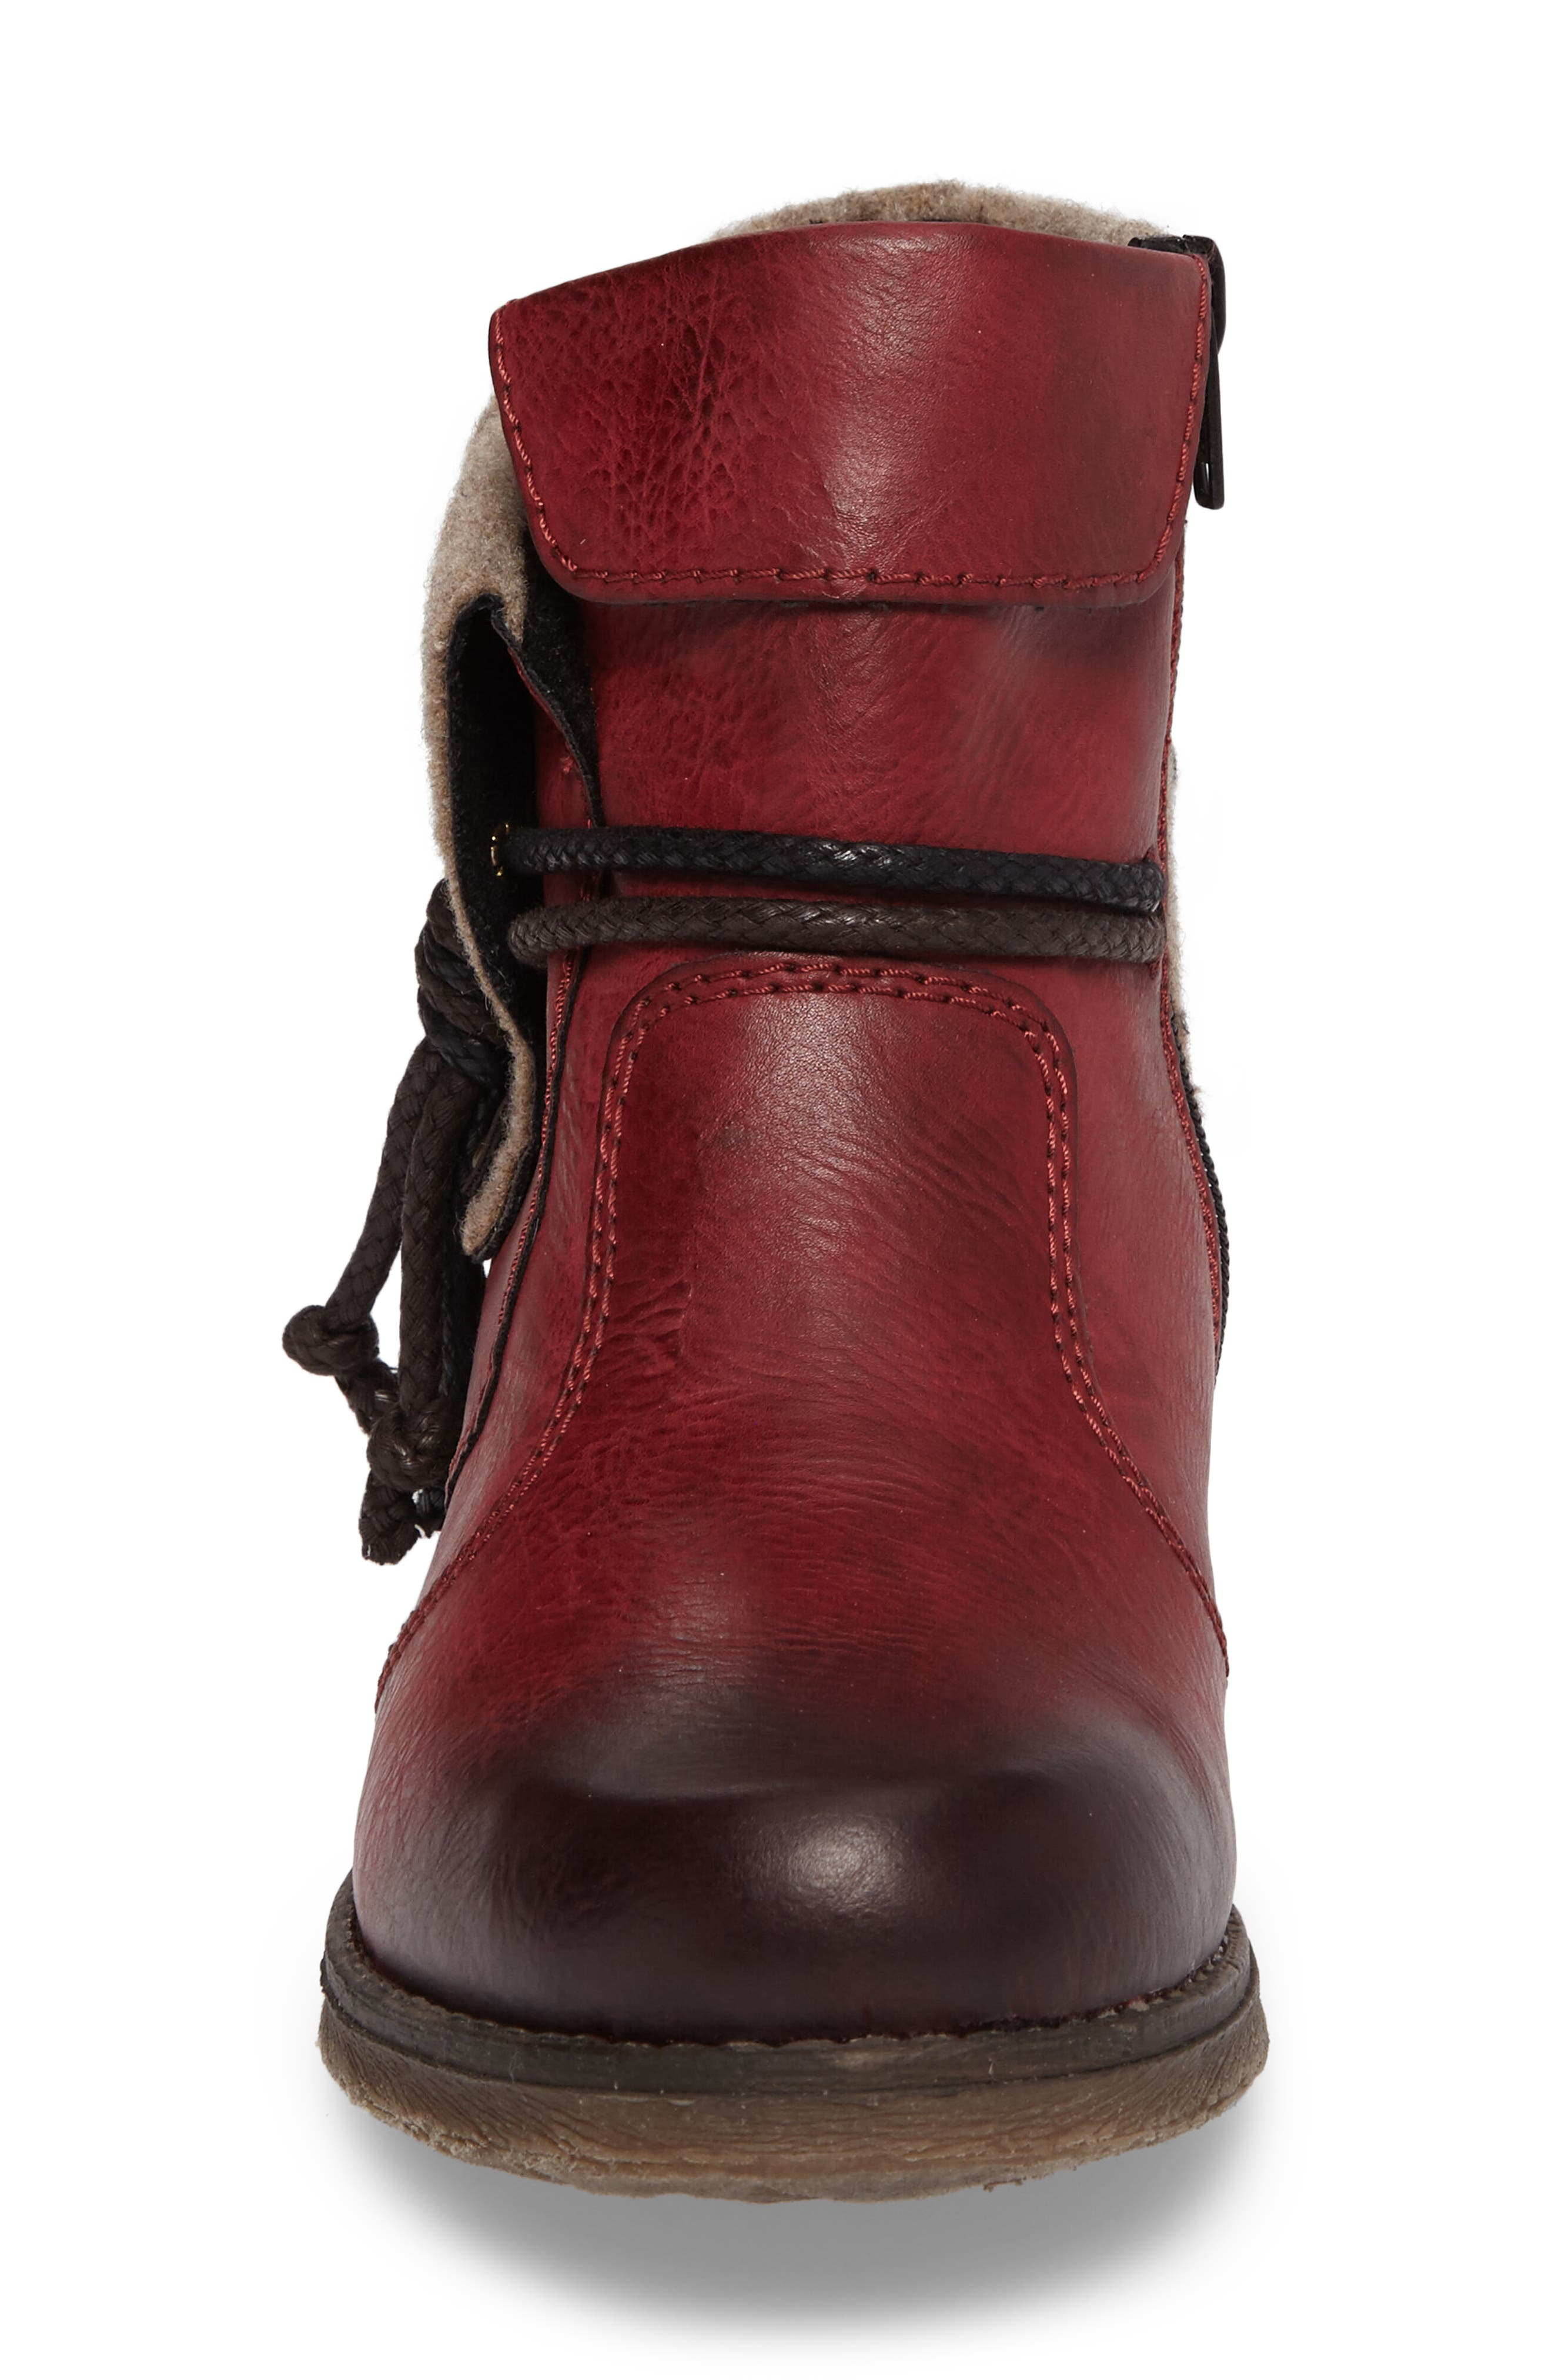 'Fee 93' Cuffed Shaft Bootie,                             Alternate thumbnail 4, color,                             WINE FAUX LEATHER